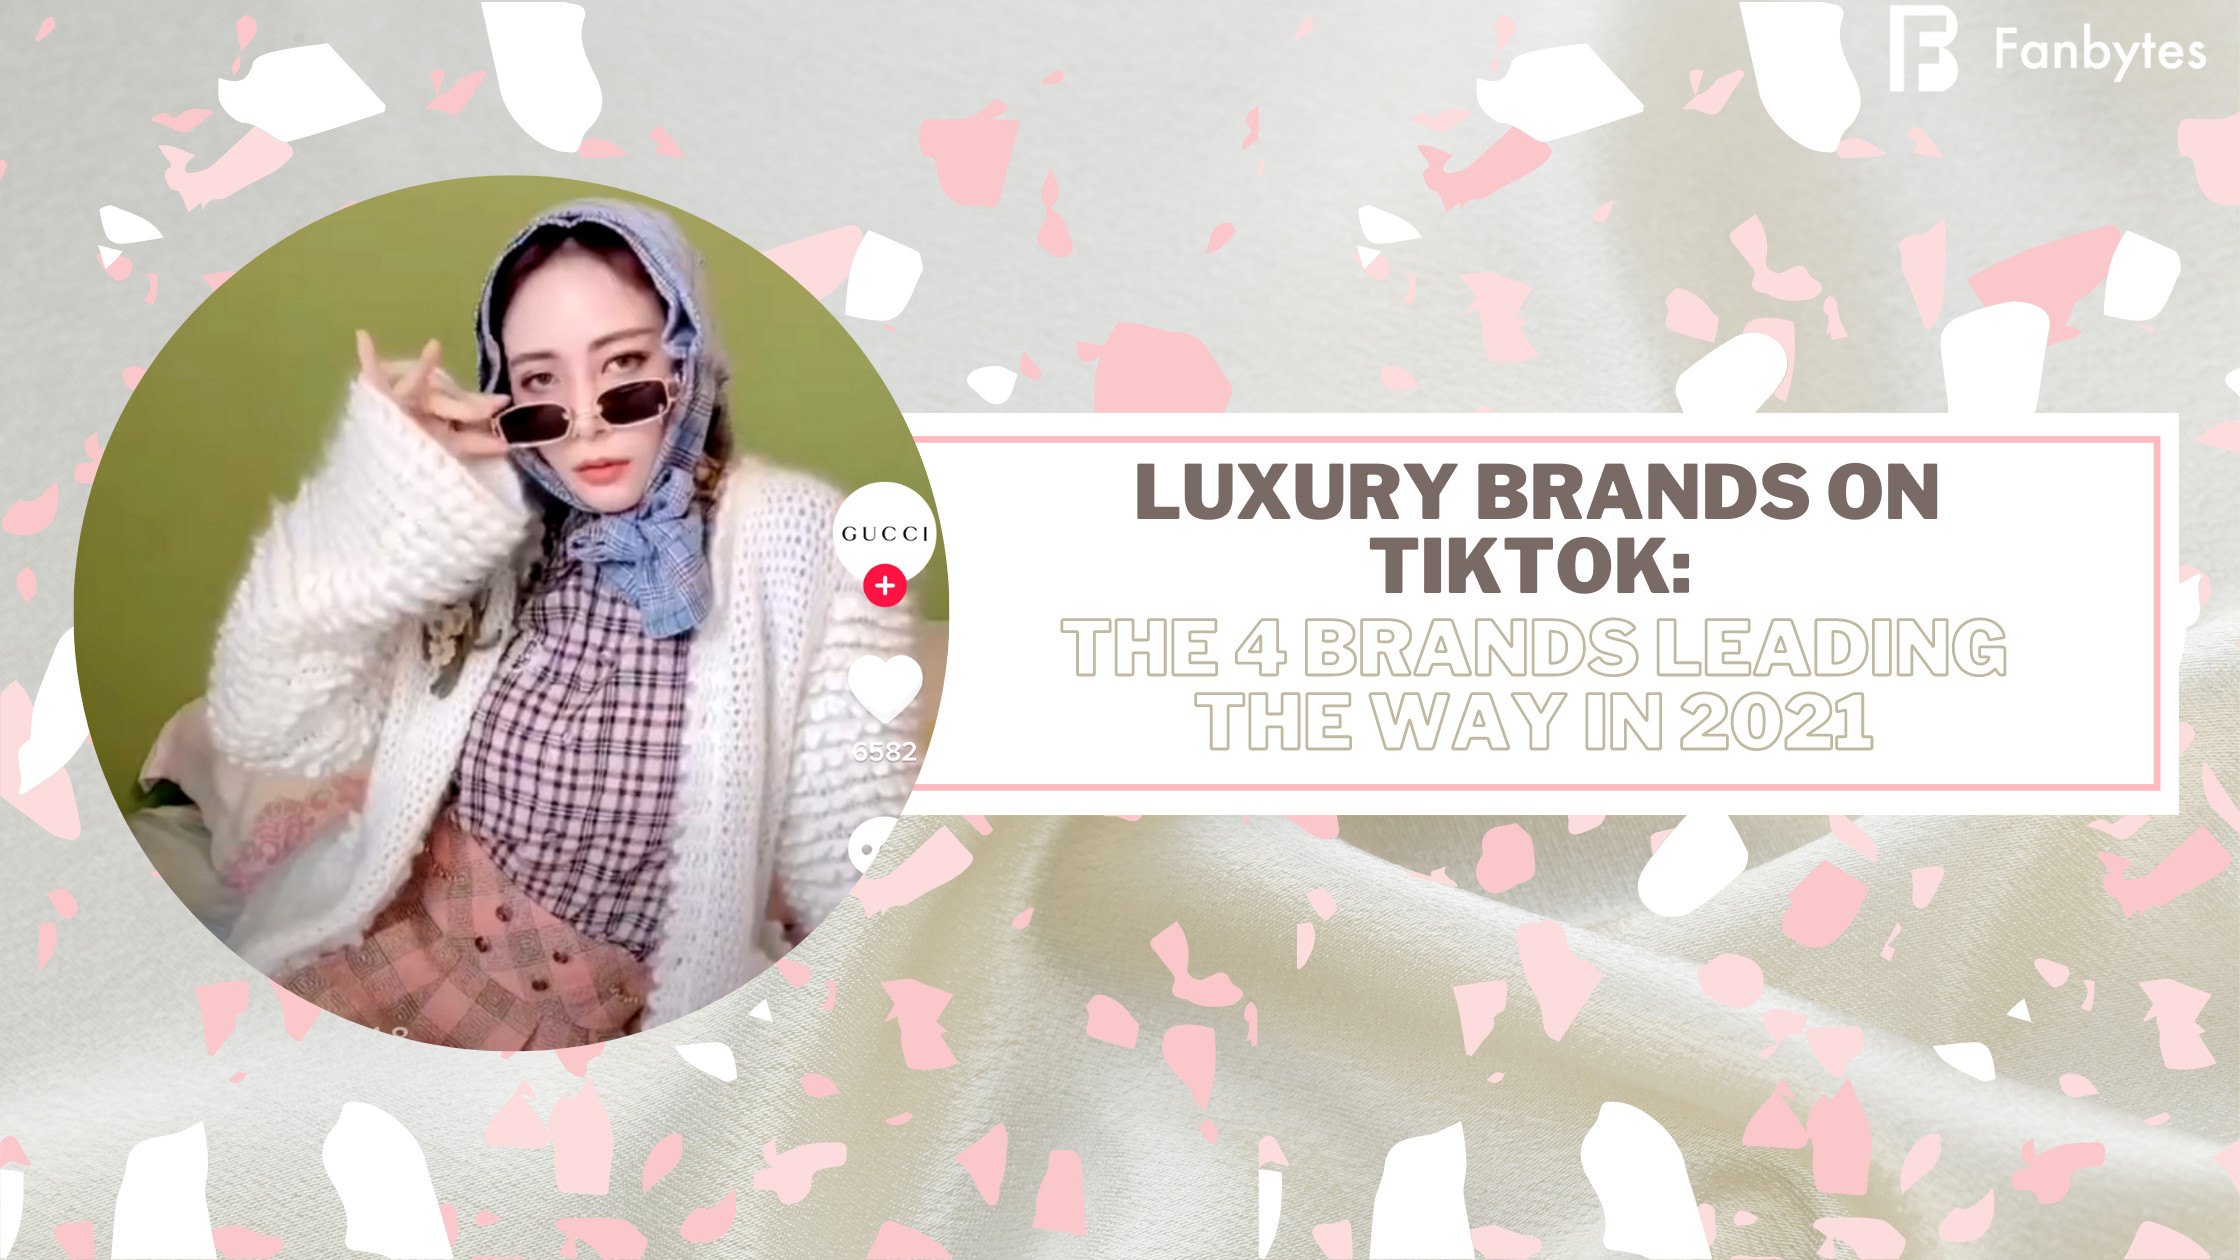 Luxury Brands On TikTok: The 4 Brands Leading The Way In 2021